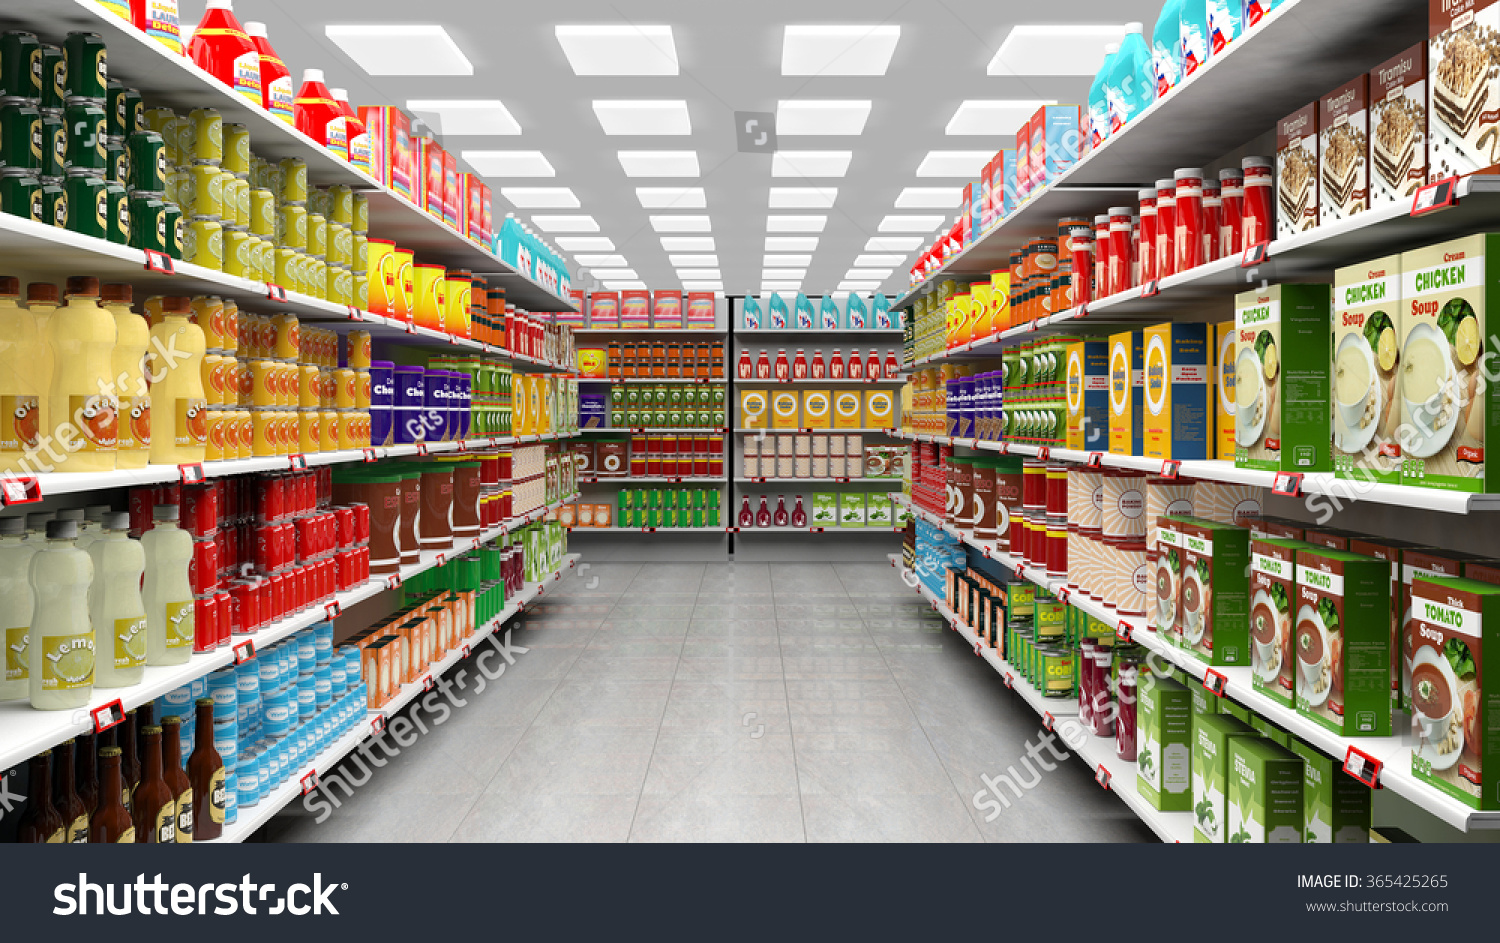 supermarket interior shelves full various products stock illustration 365425265 shutterstock. Black Bedroom Furniture Sets. Home Design Ideas